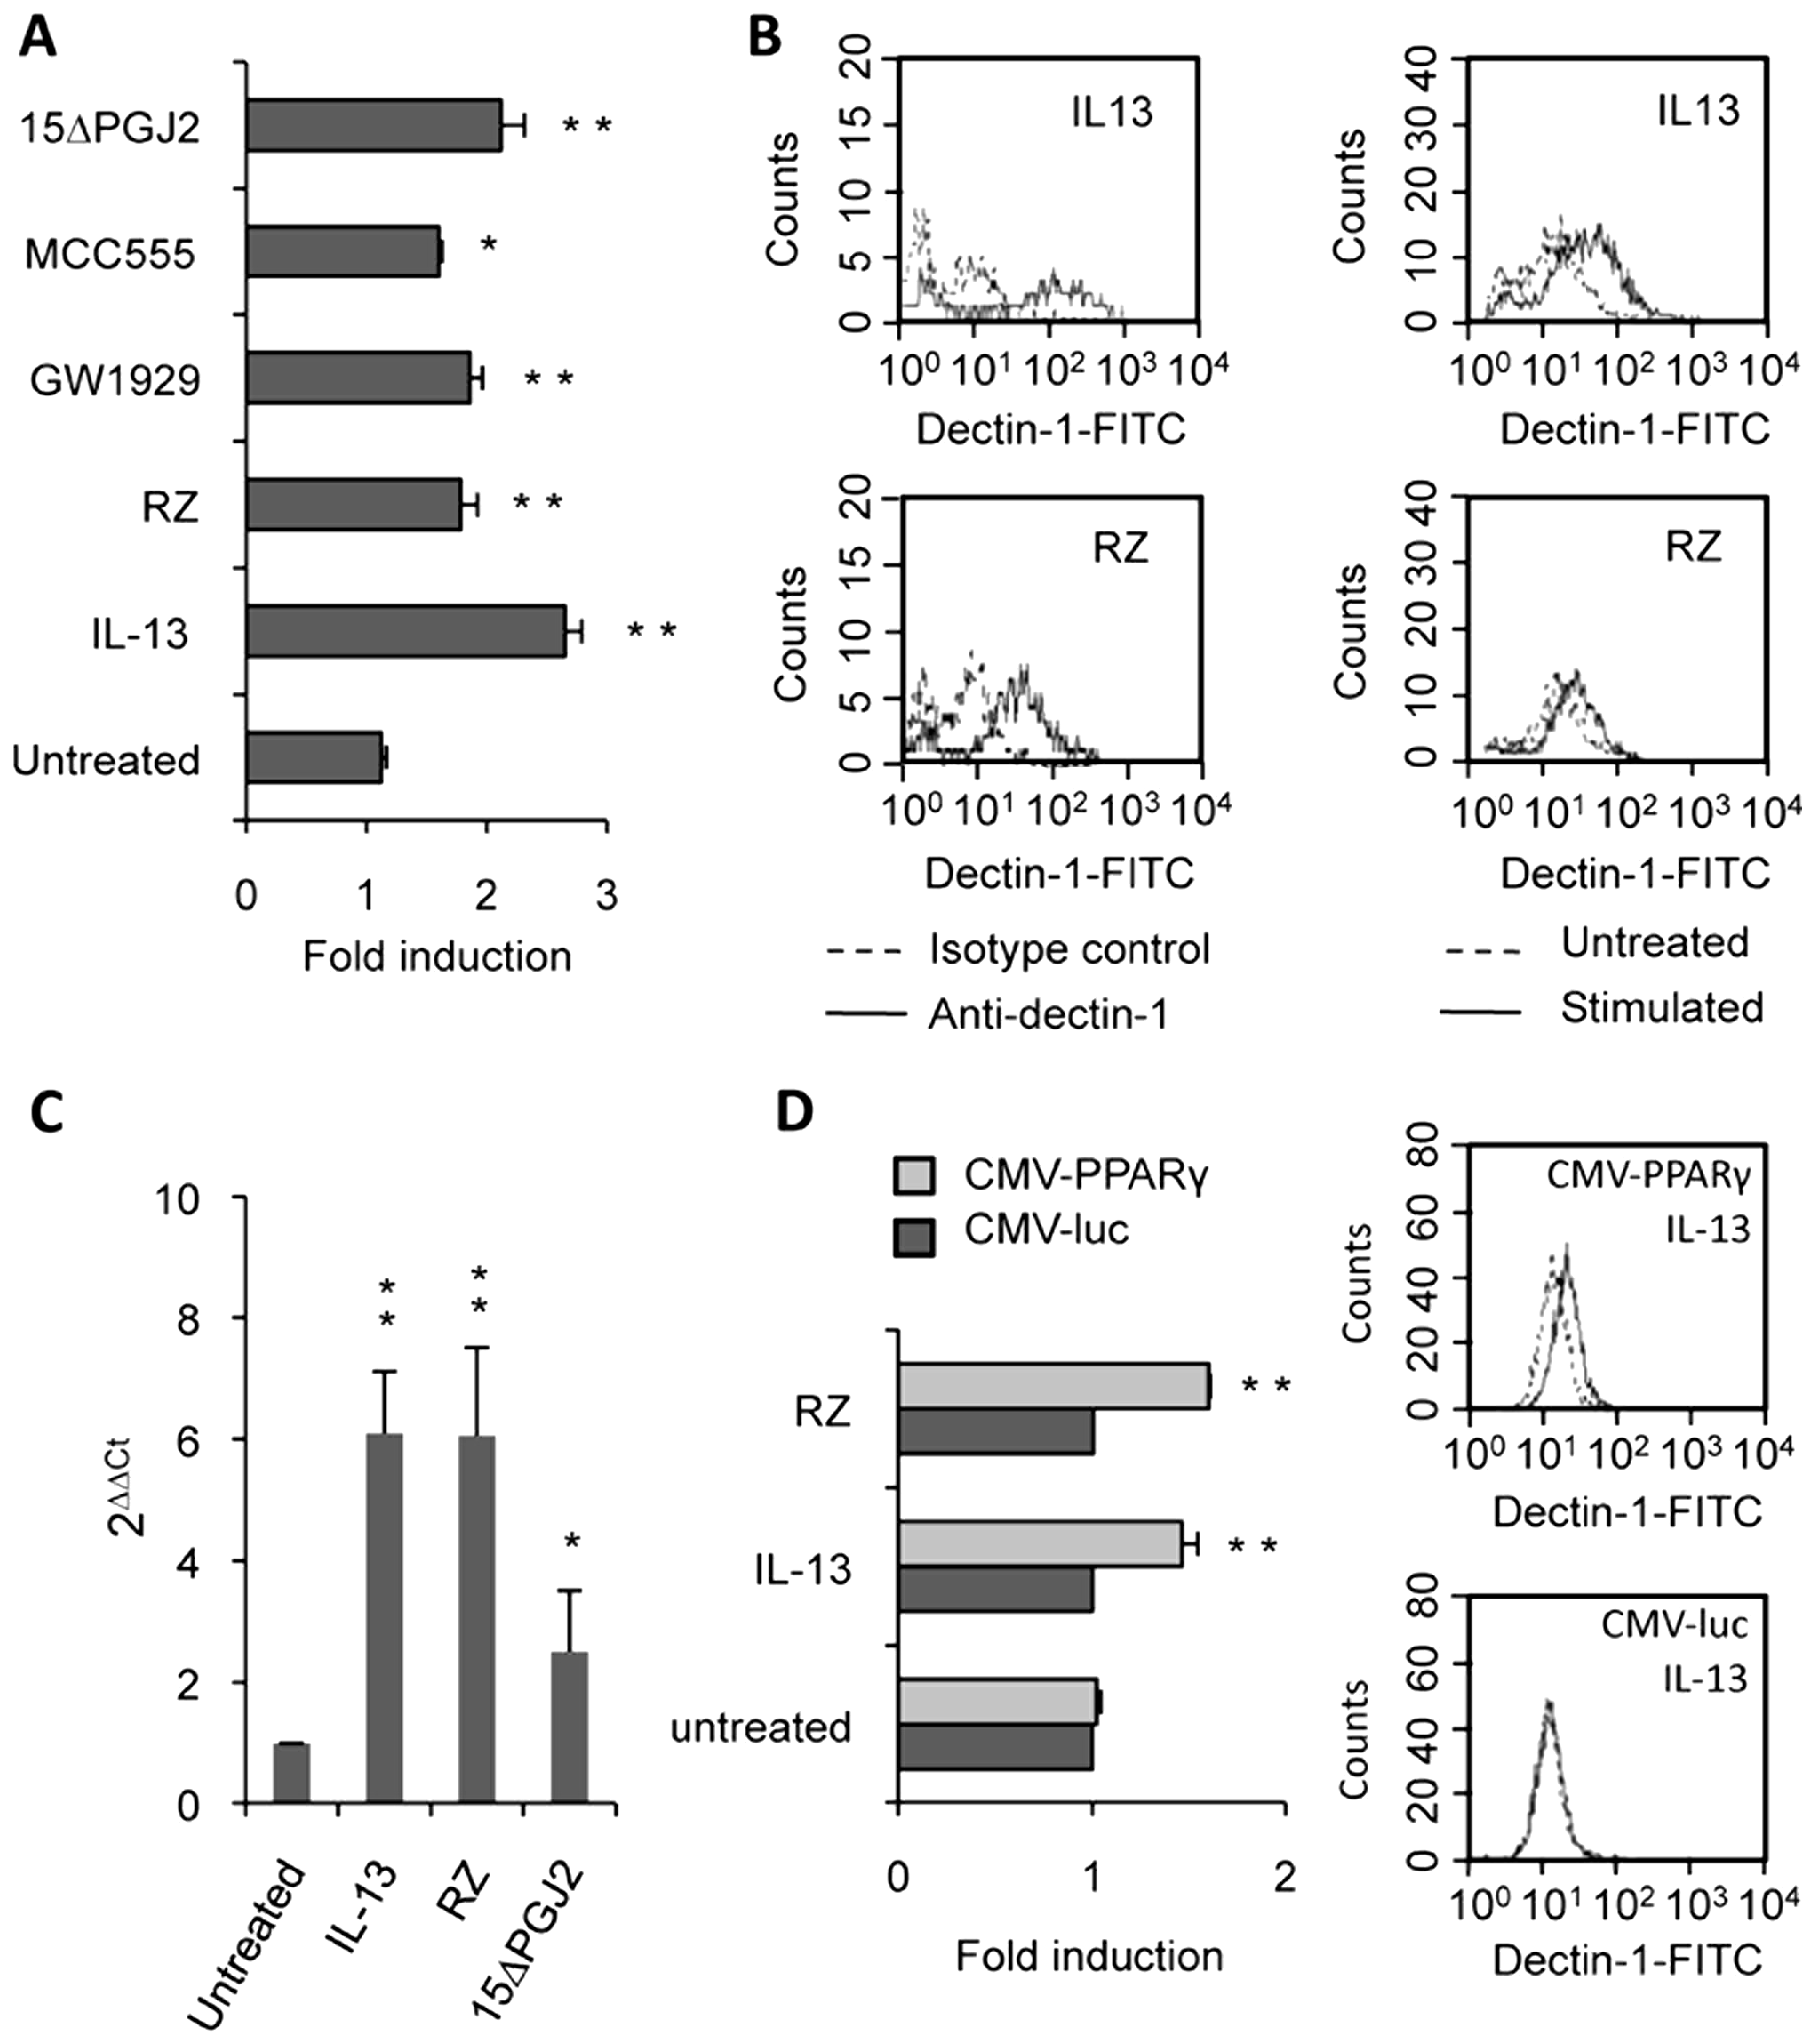 Dectin-1 expression depends on PPARγ activation by IL-13 or PPARγ-specific ligands.